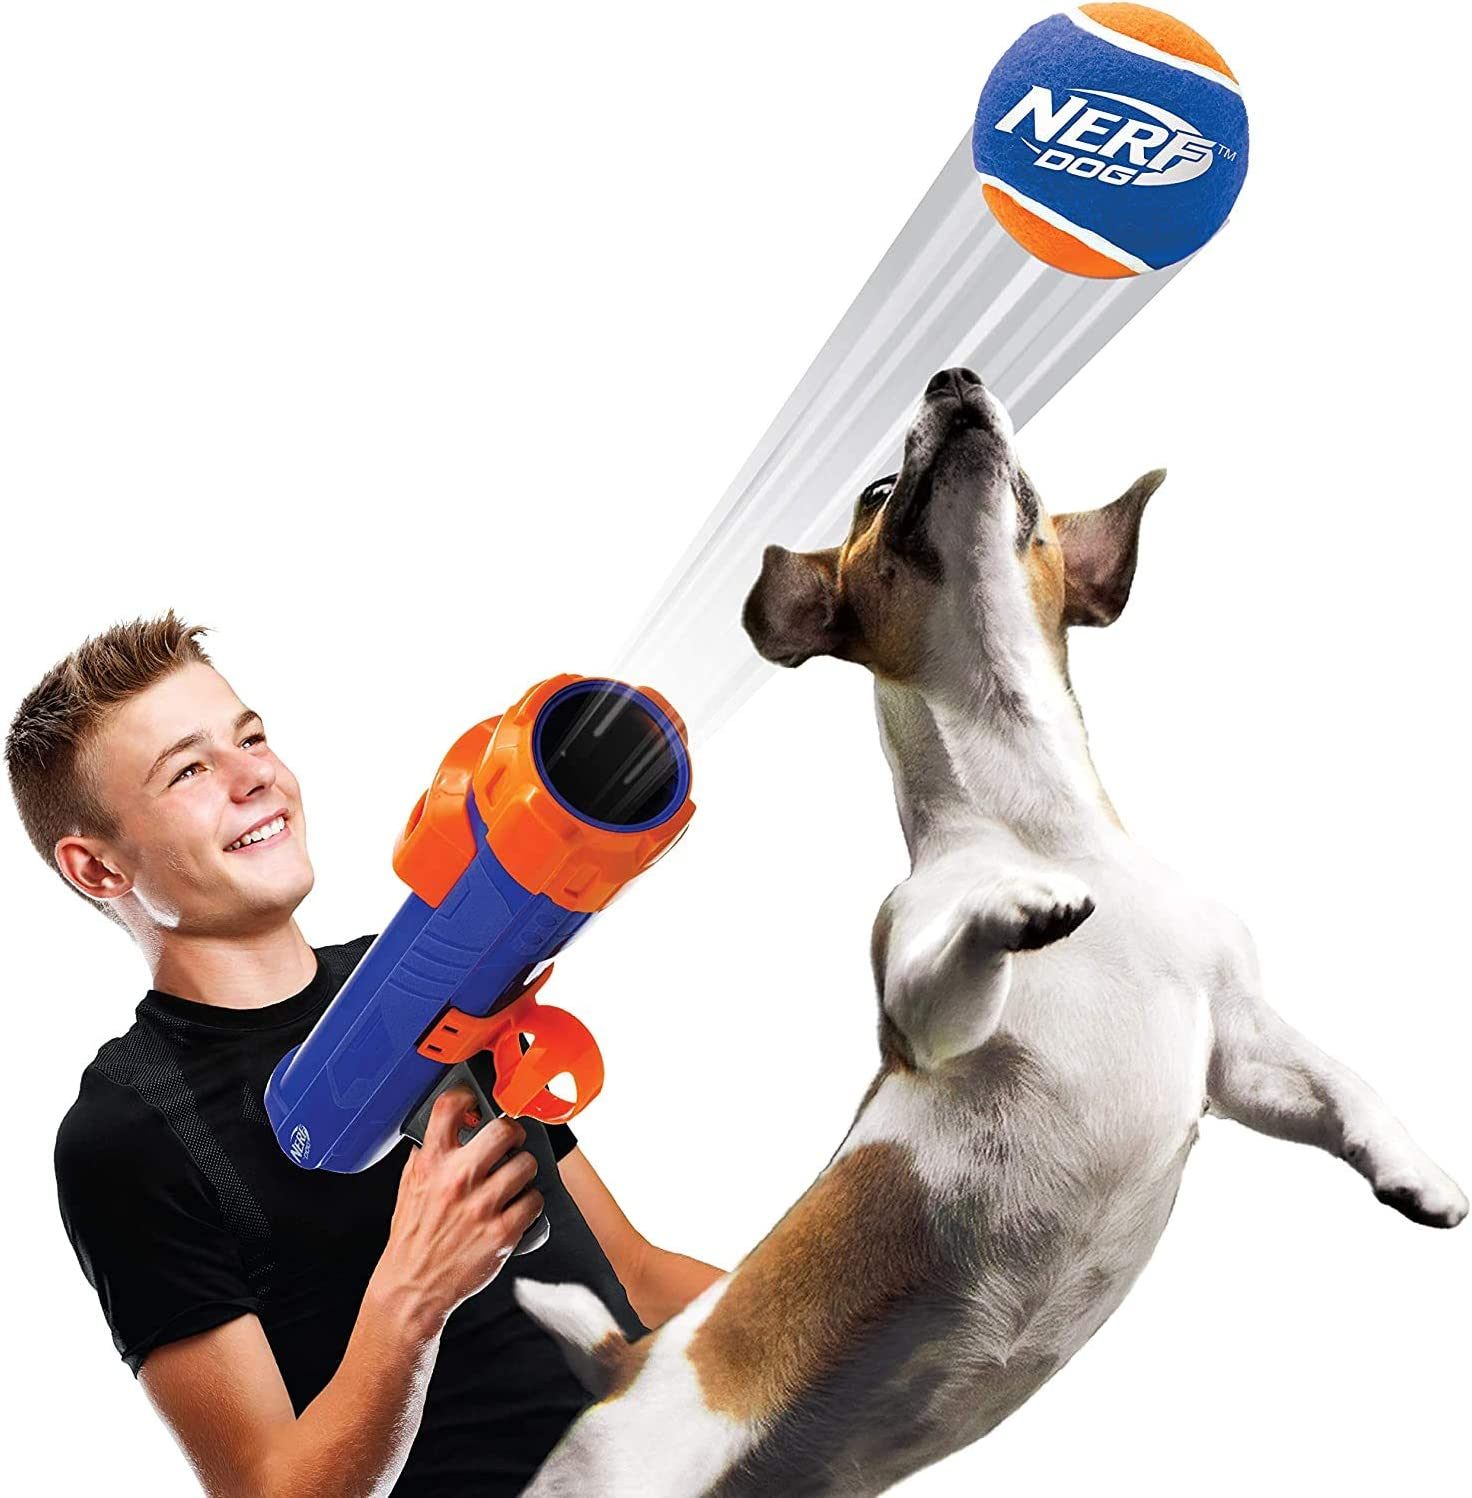 Pet Supplies : Nerf Dog Tennis Ball Blaster Dog Toy, Great for Fetch, Hands-Free Reload, Launches up to 50 ft :